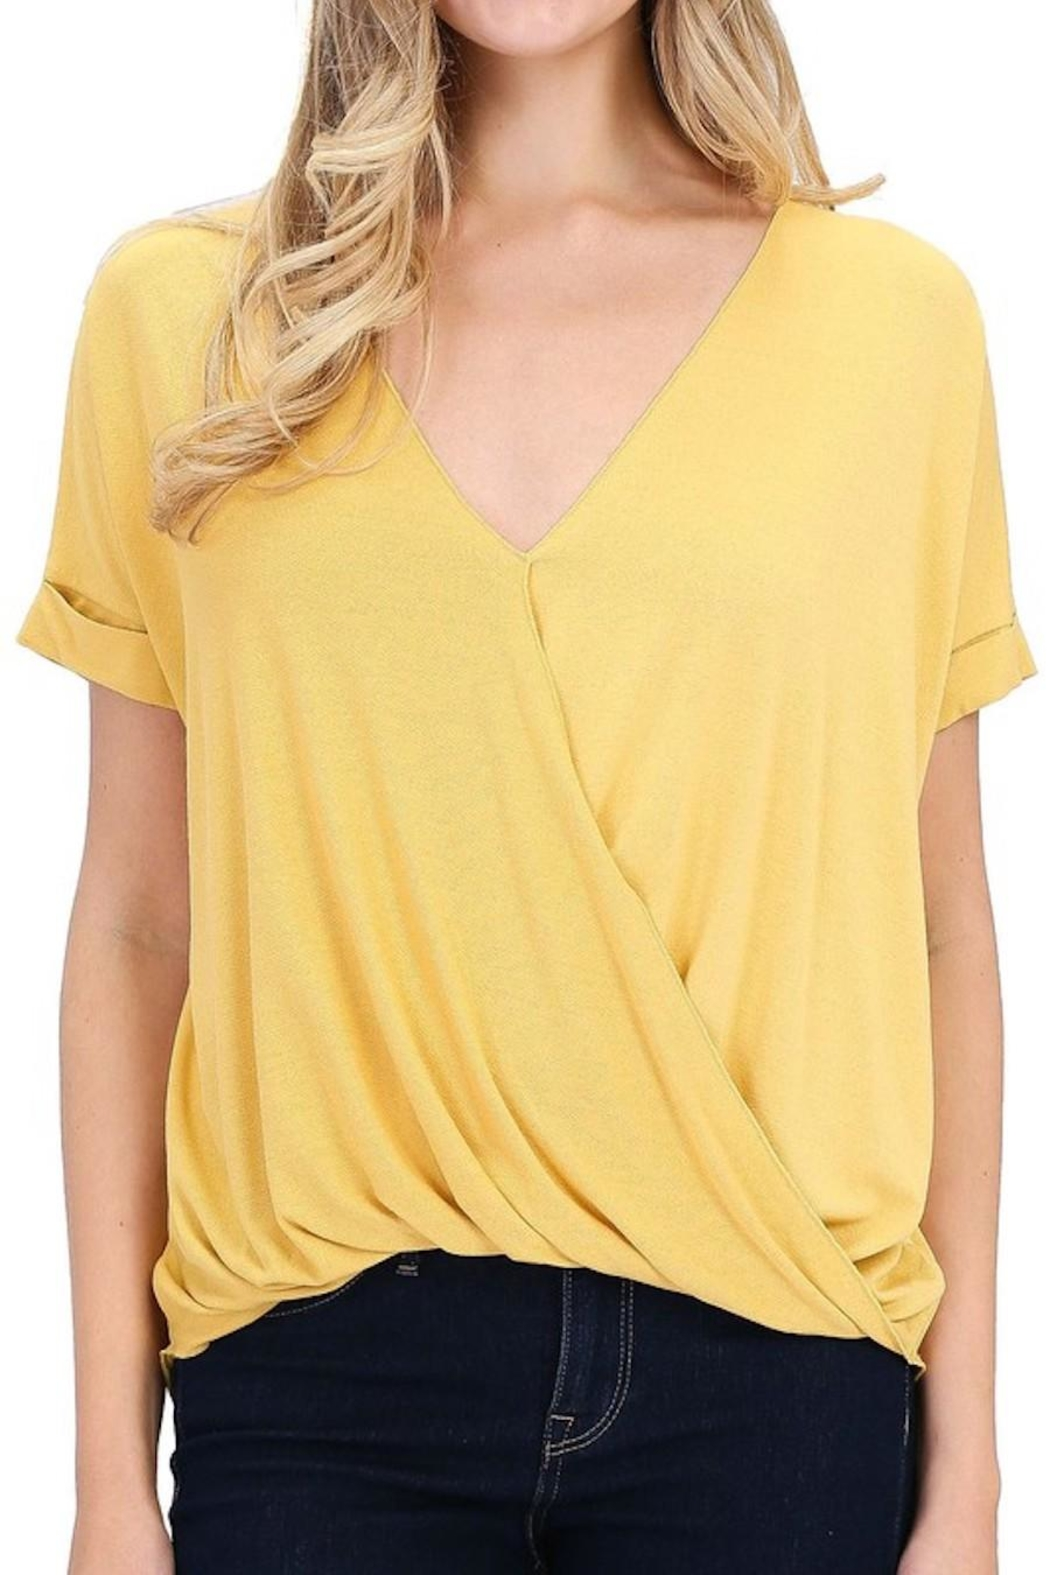 Double Zero That's-A-Wrap Mustard Top - Main Image